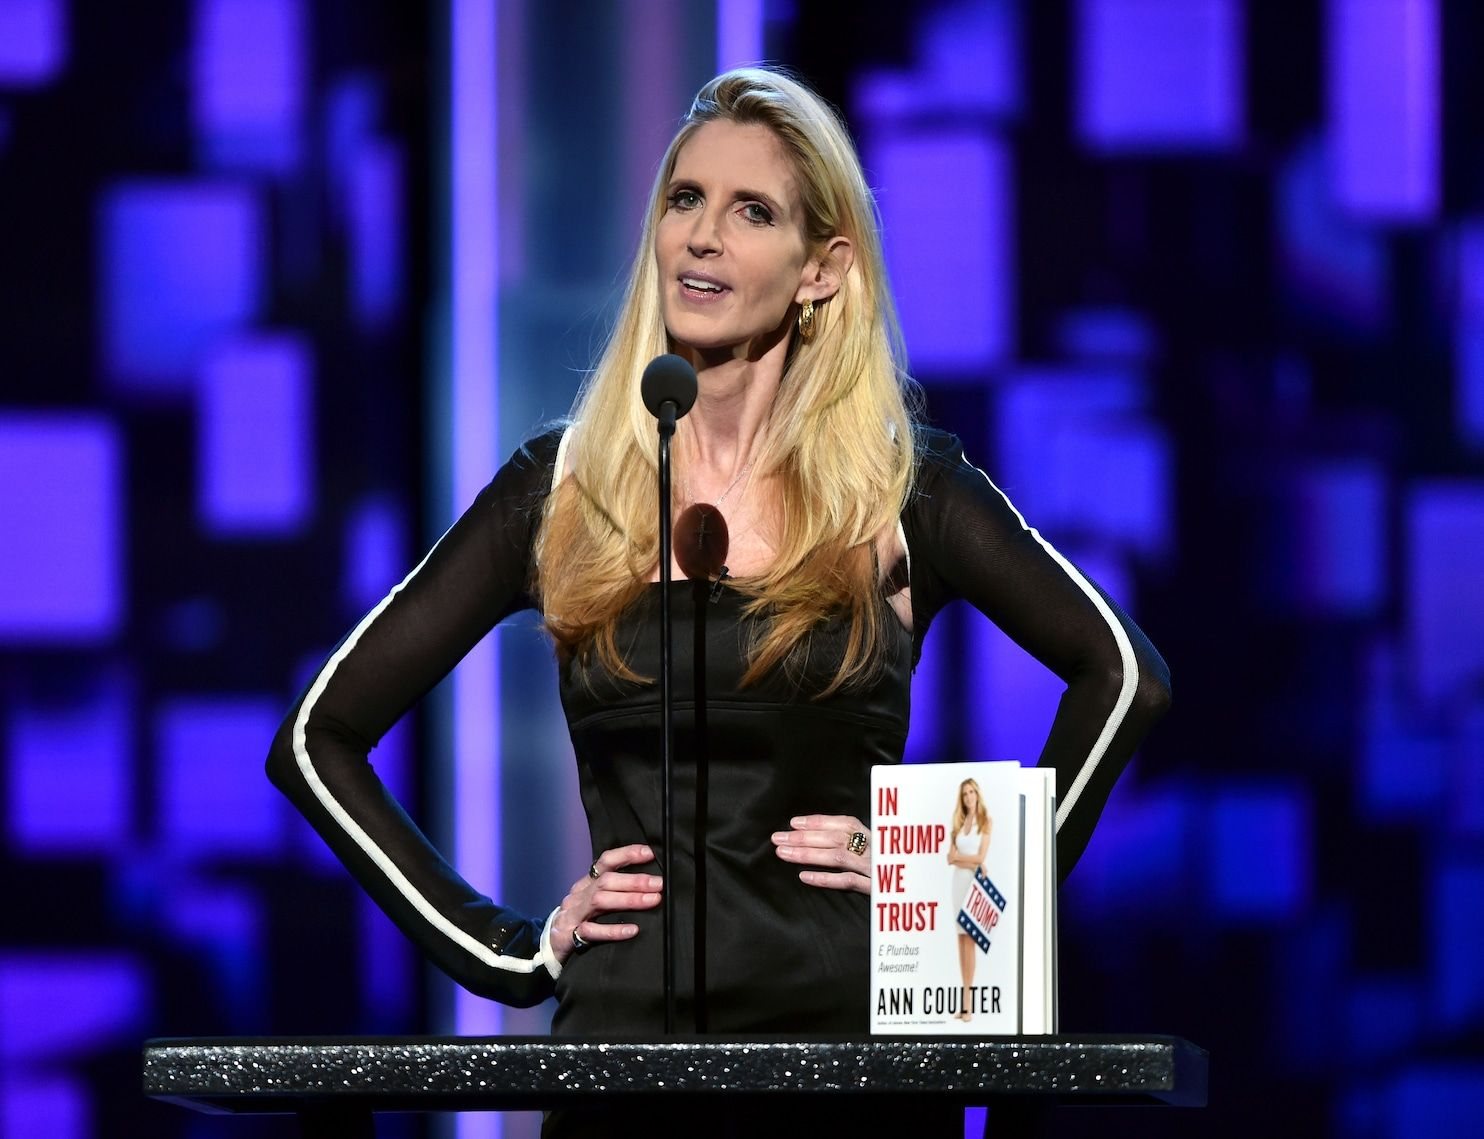 Berkeley reverses decision to cancel speech by conservative pundit Ann Coulter